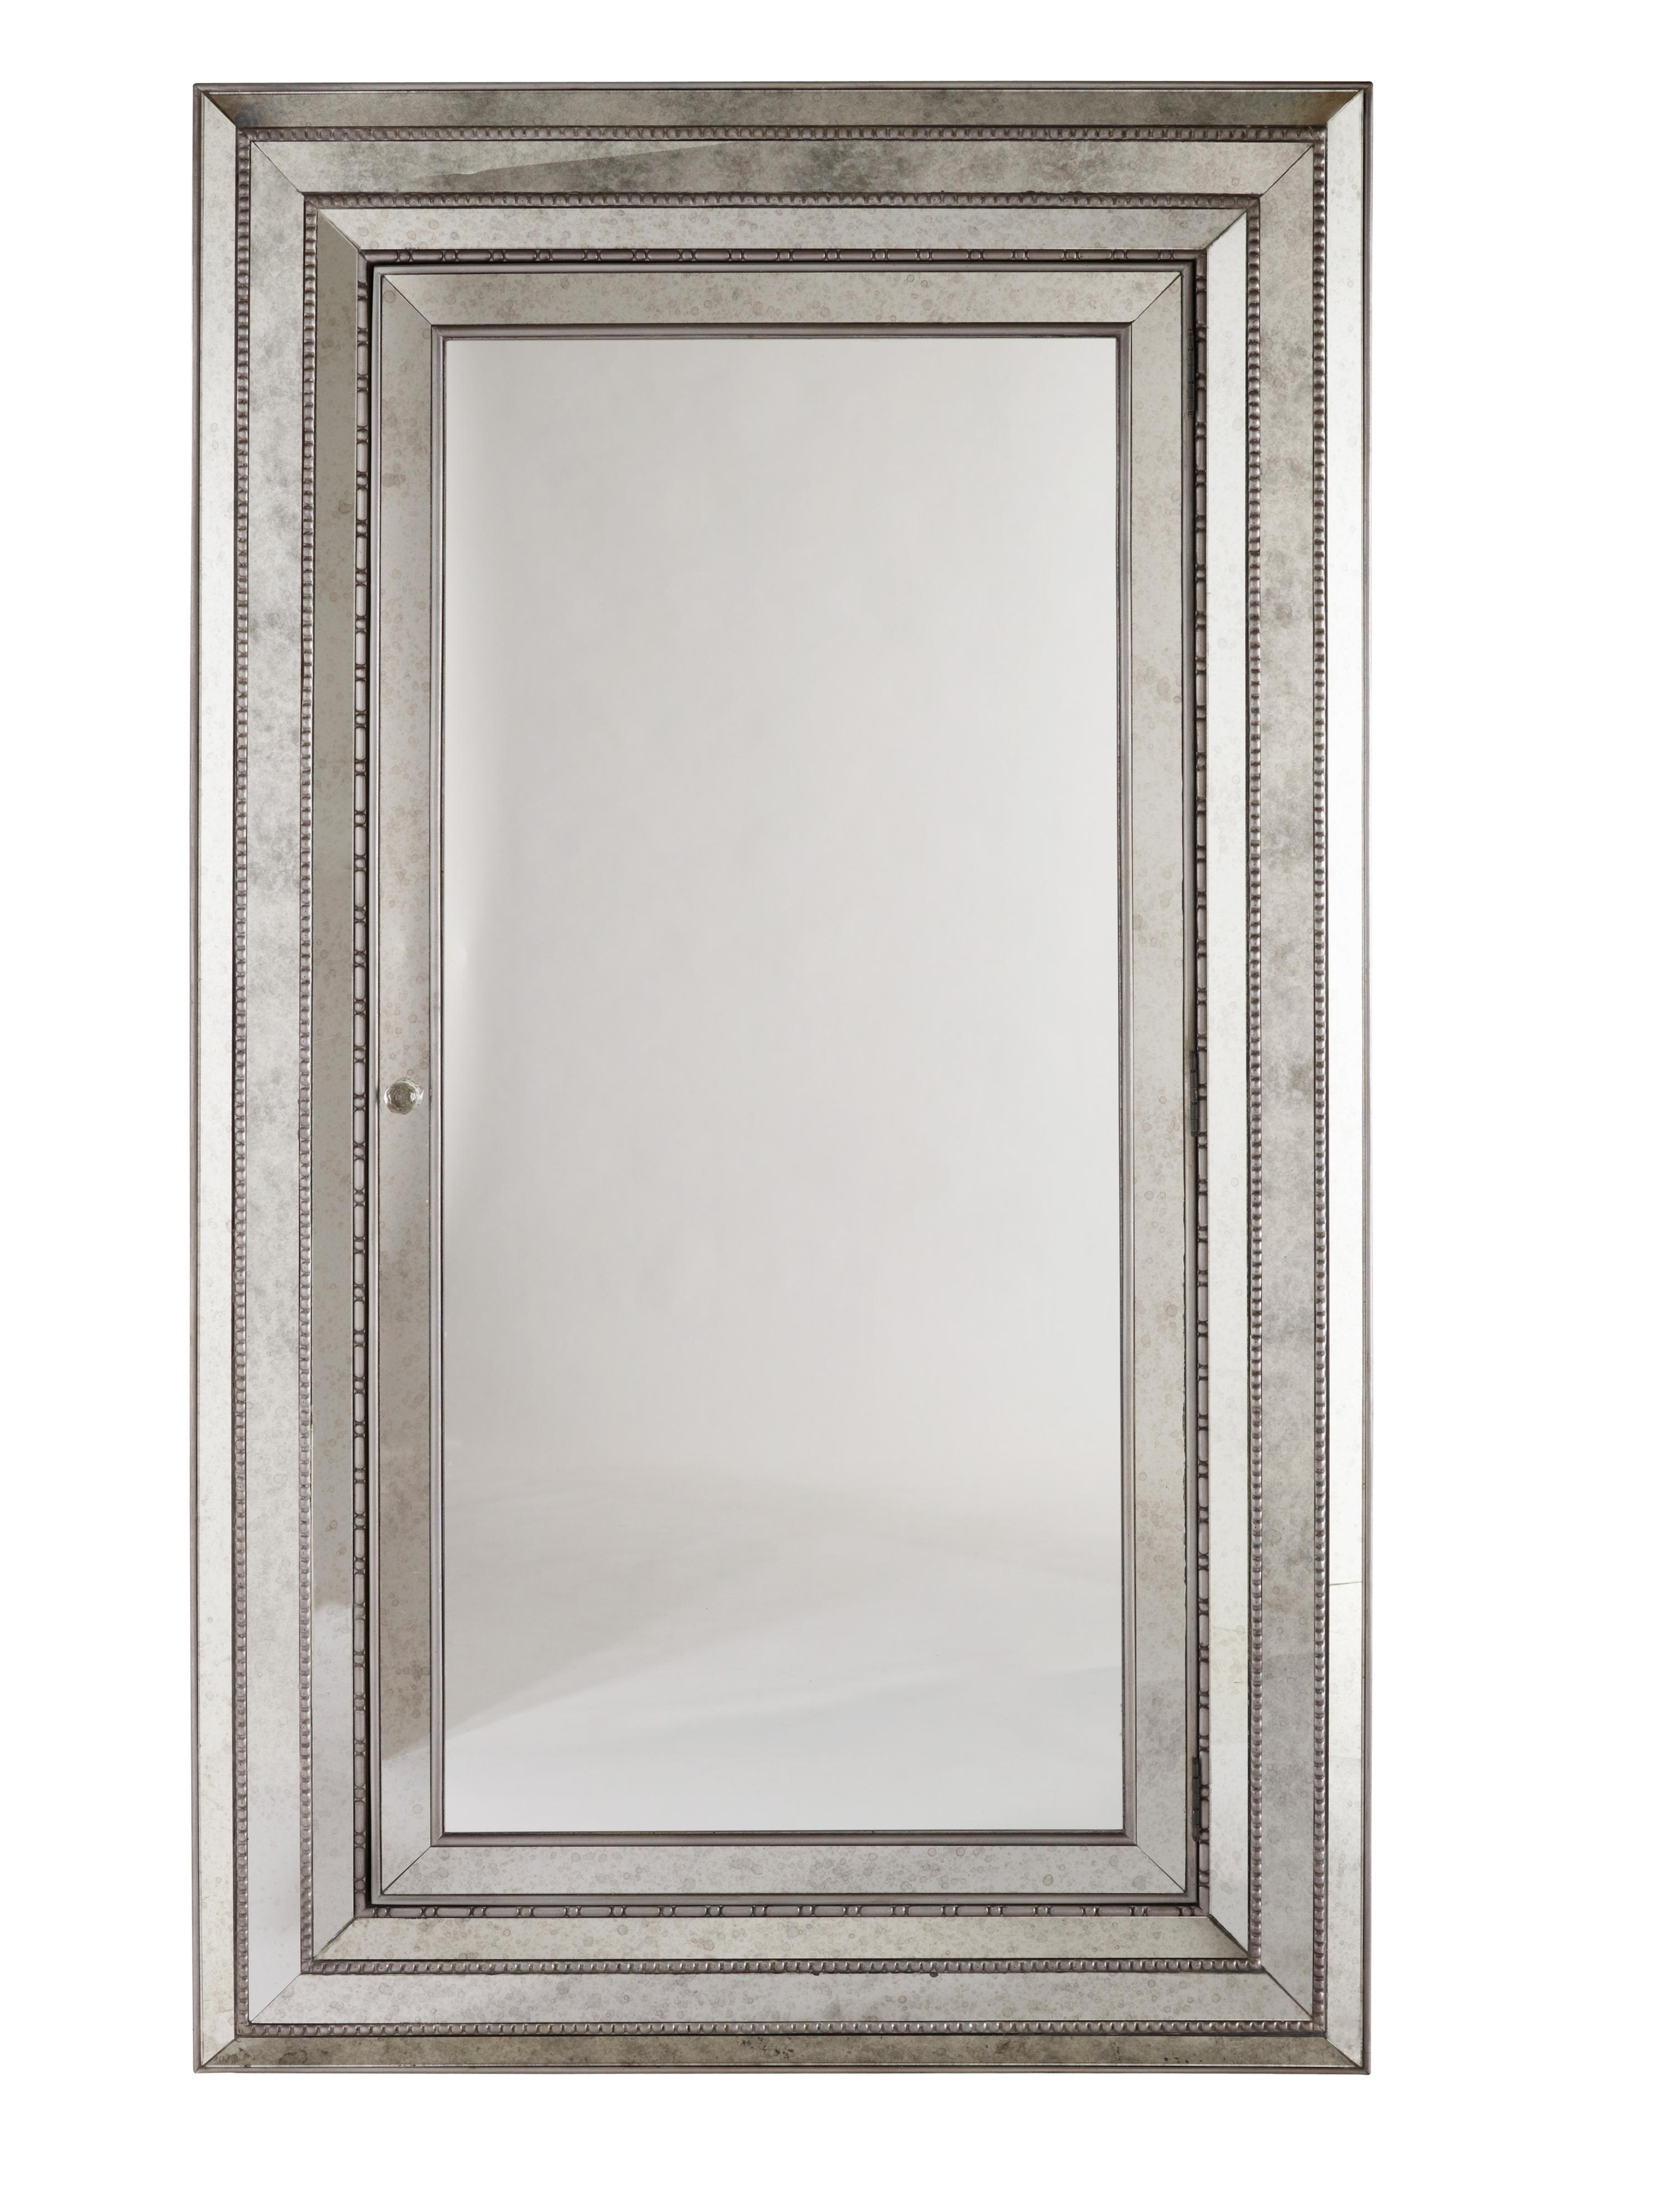 Hooker Furniture Mélange Glamour Floor Mirror - Item Number: 638-50012